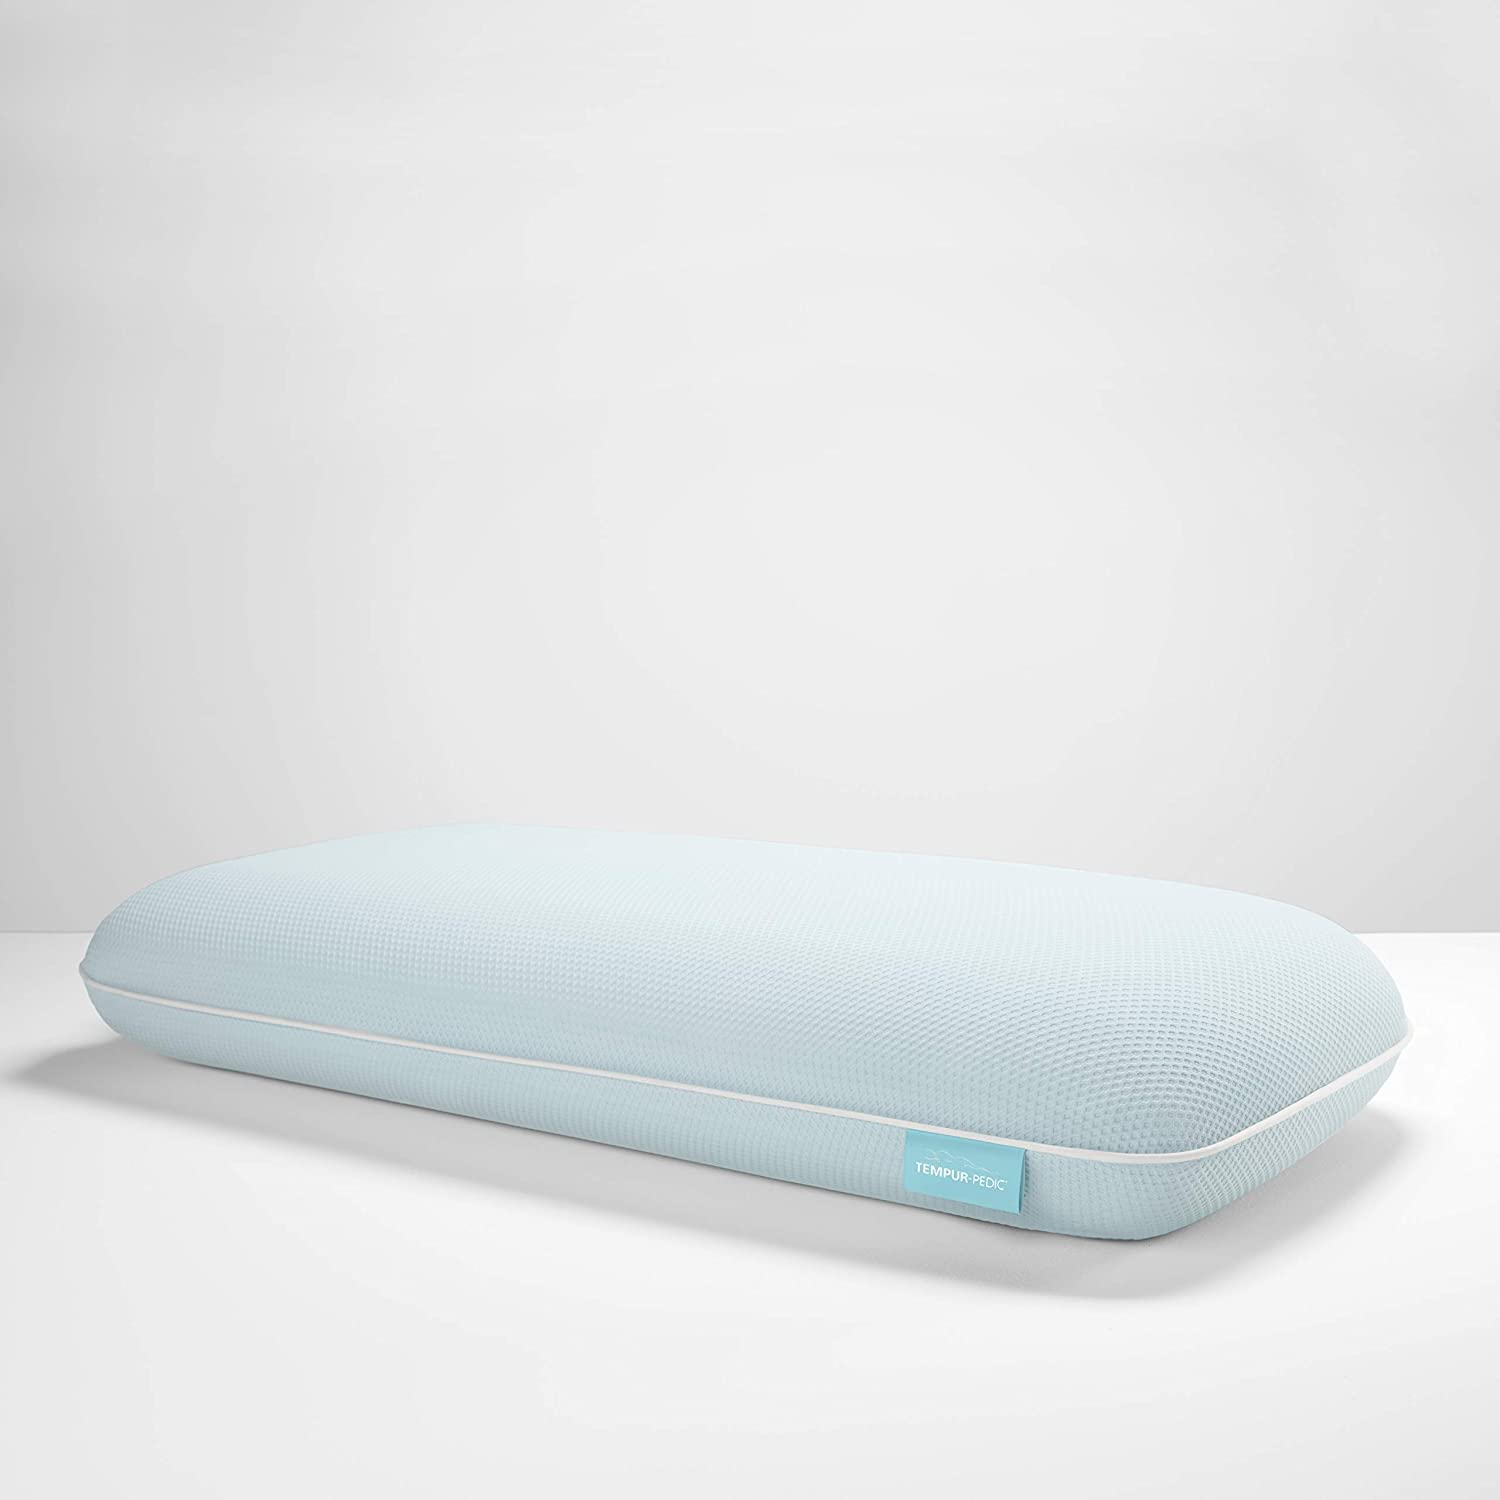 Tempur-Pedic TEMPUR-Cloud + Cooling ProLo Pillow, King, White